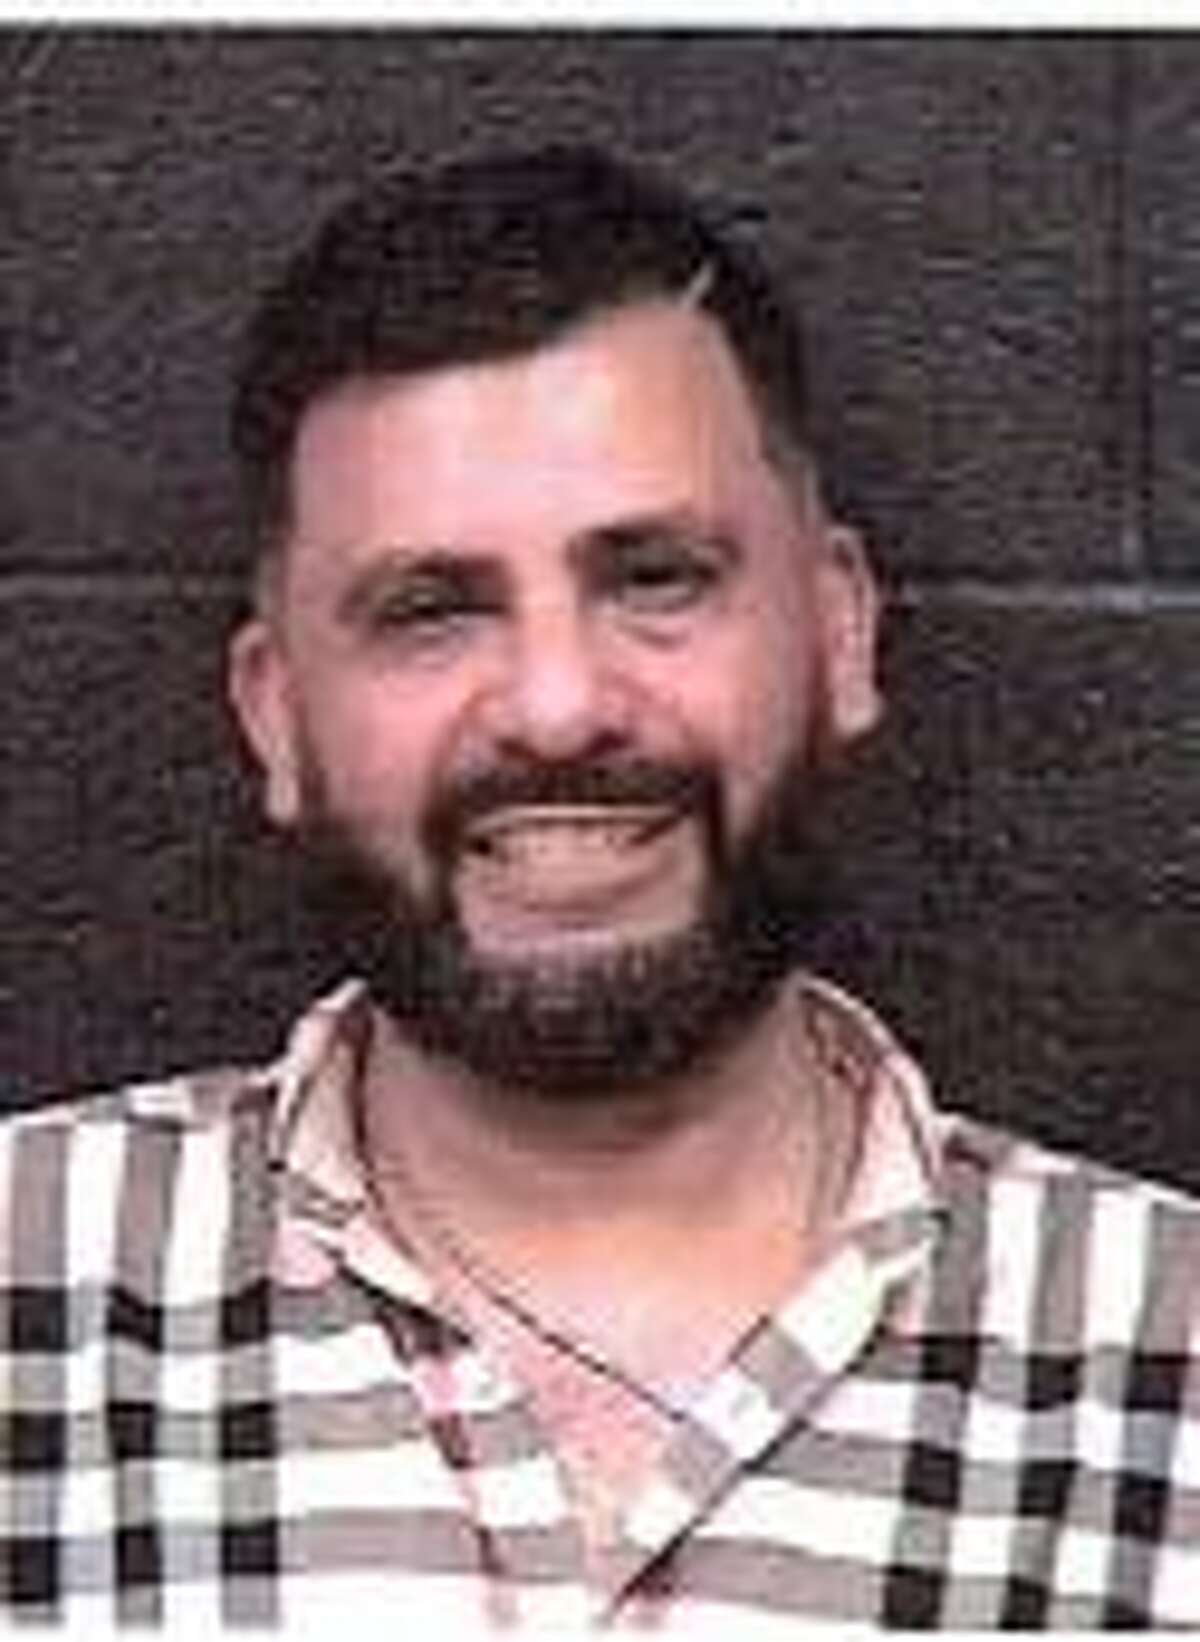 Ruben Enrique Rodriguez was charged with driving while intoxicated.